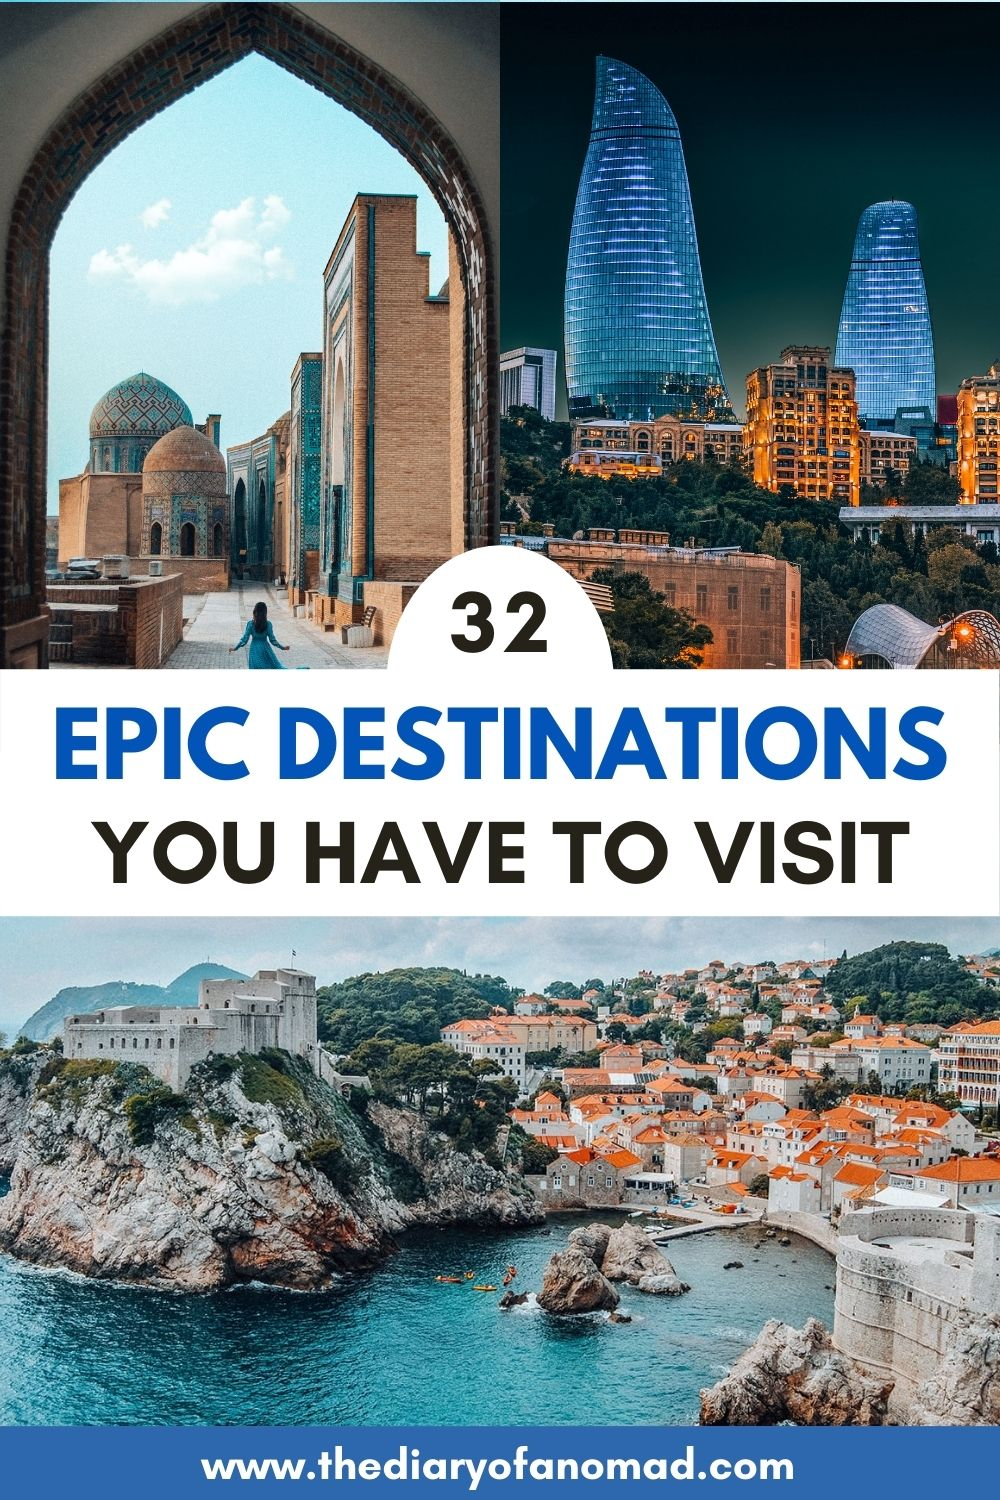 Best travel destinations around the world, travel inspiration, travel bucket lists, Europe, Asia, South America, Africa, Oceania, most beautiful places in the world, travel photography, travel ideas